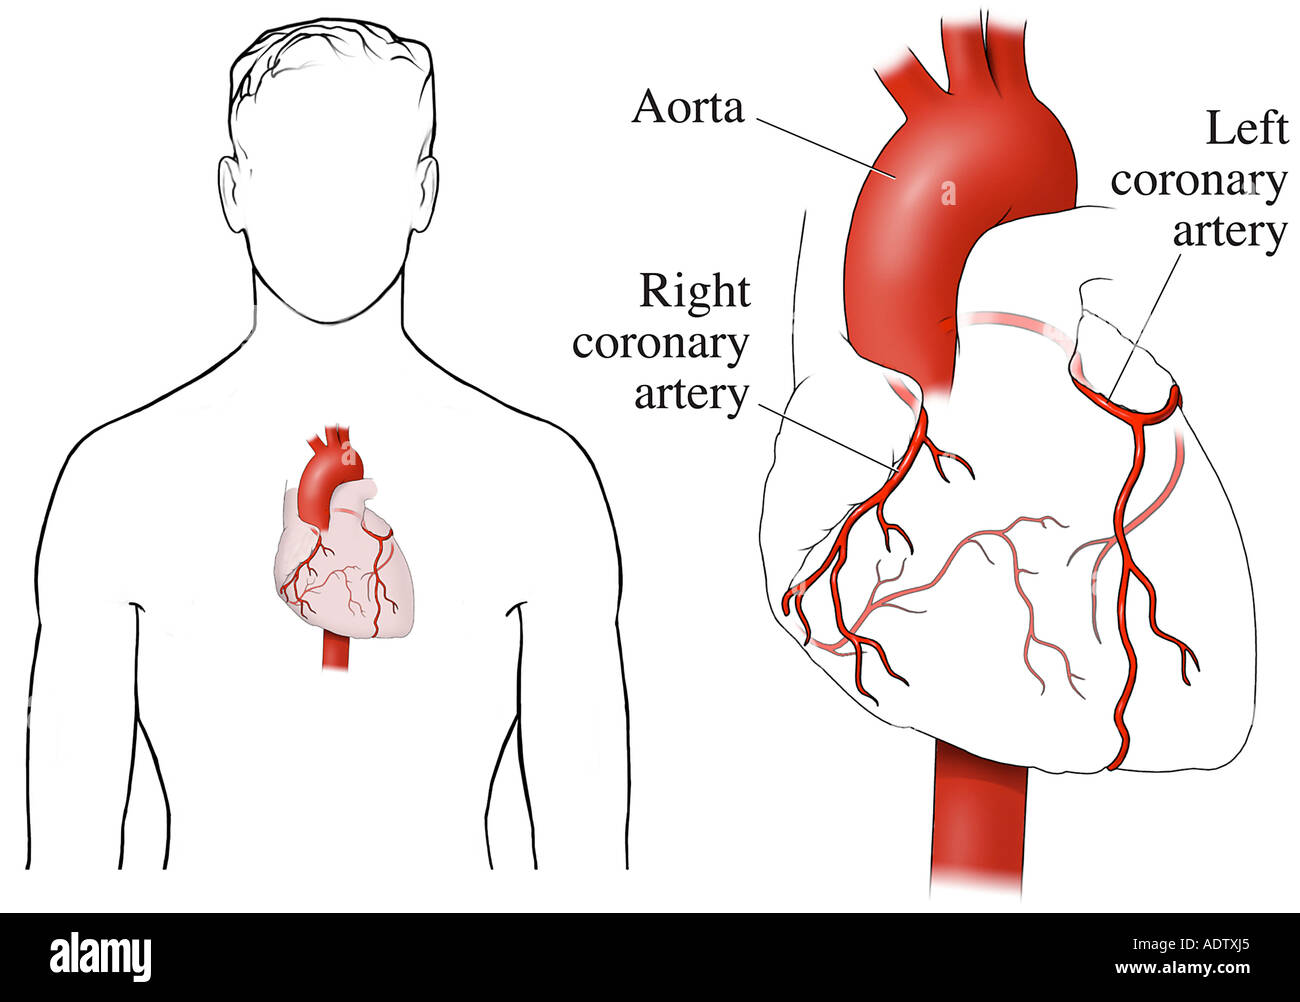 Coronary Arteries Stock Photos Coronary Arteries Stock Images Alamy